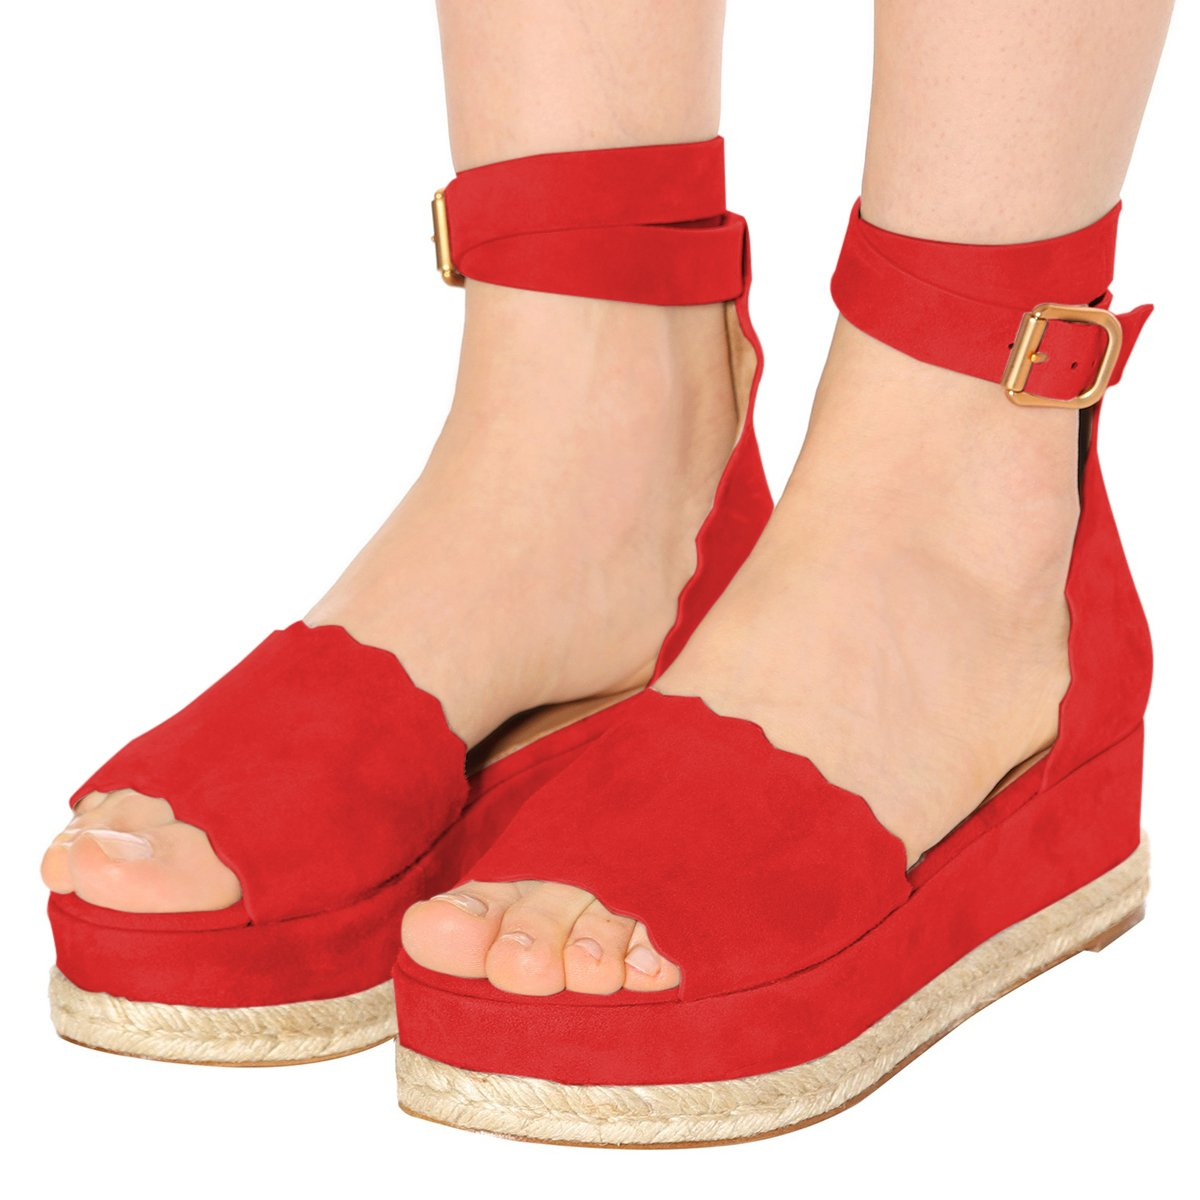 YDN Women Espadrille Peep Toe Ankle Straps Wedge Sandals Low Heels Platform Shoes with Buckle B07DCNQL4M 11 M US|Red